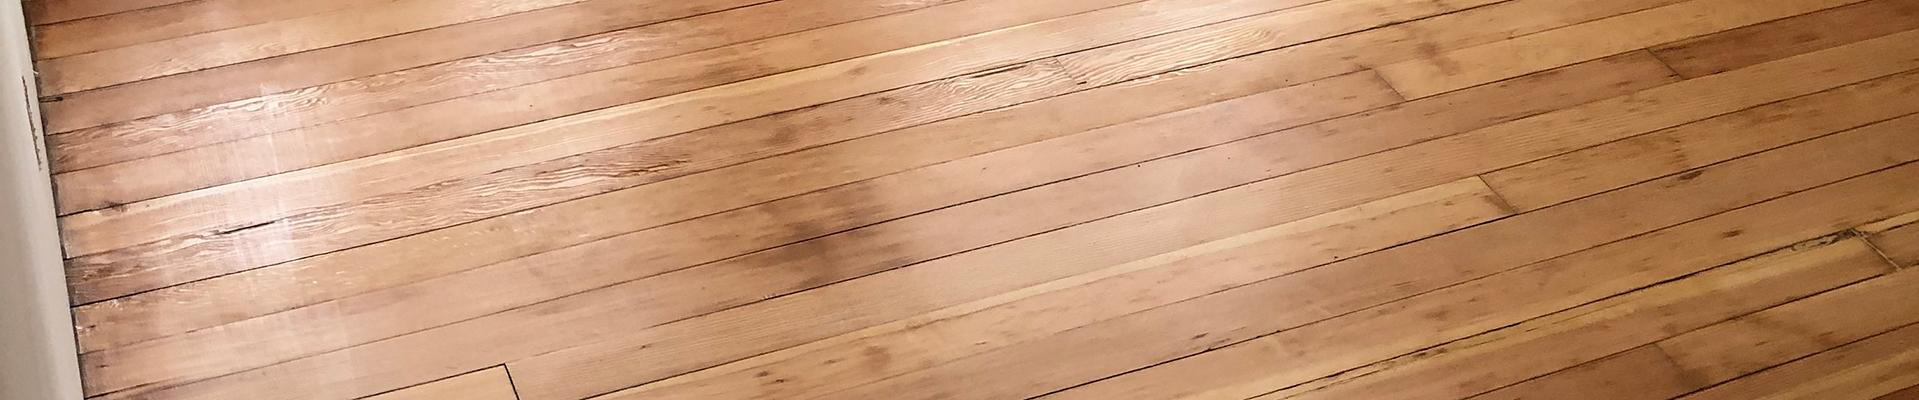 Close-up of wooden floor refinished